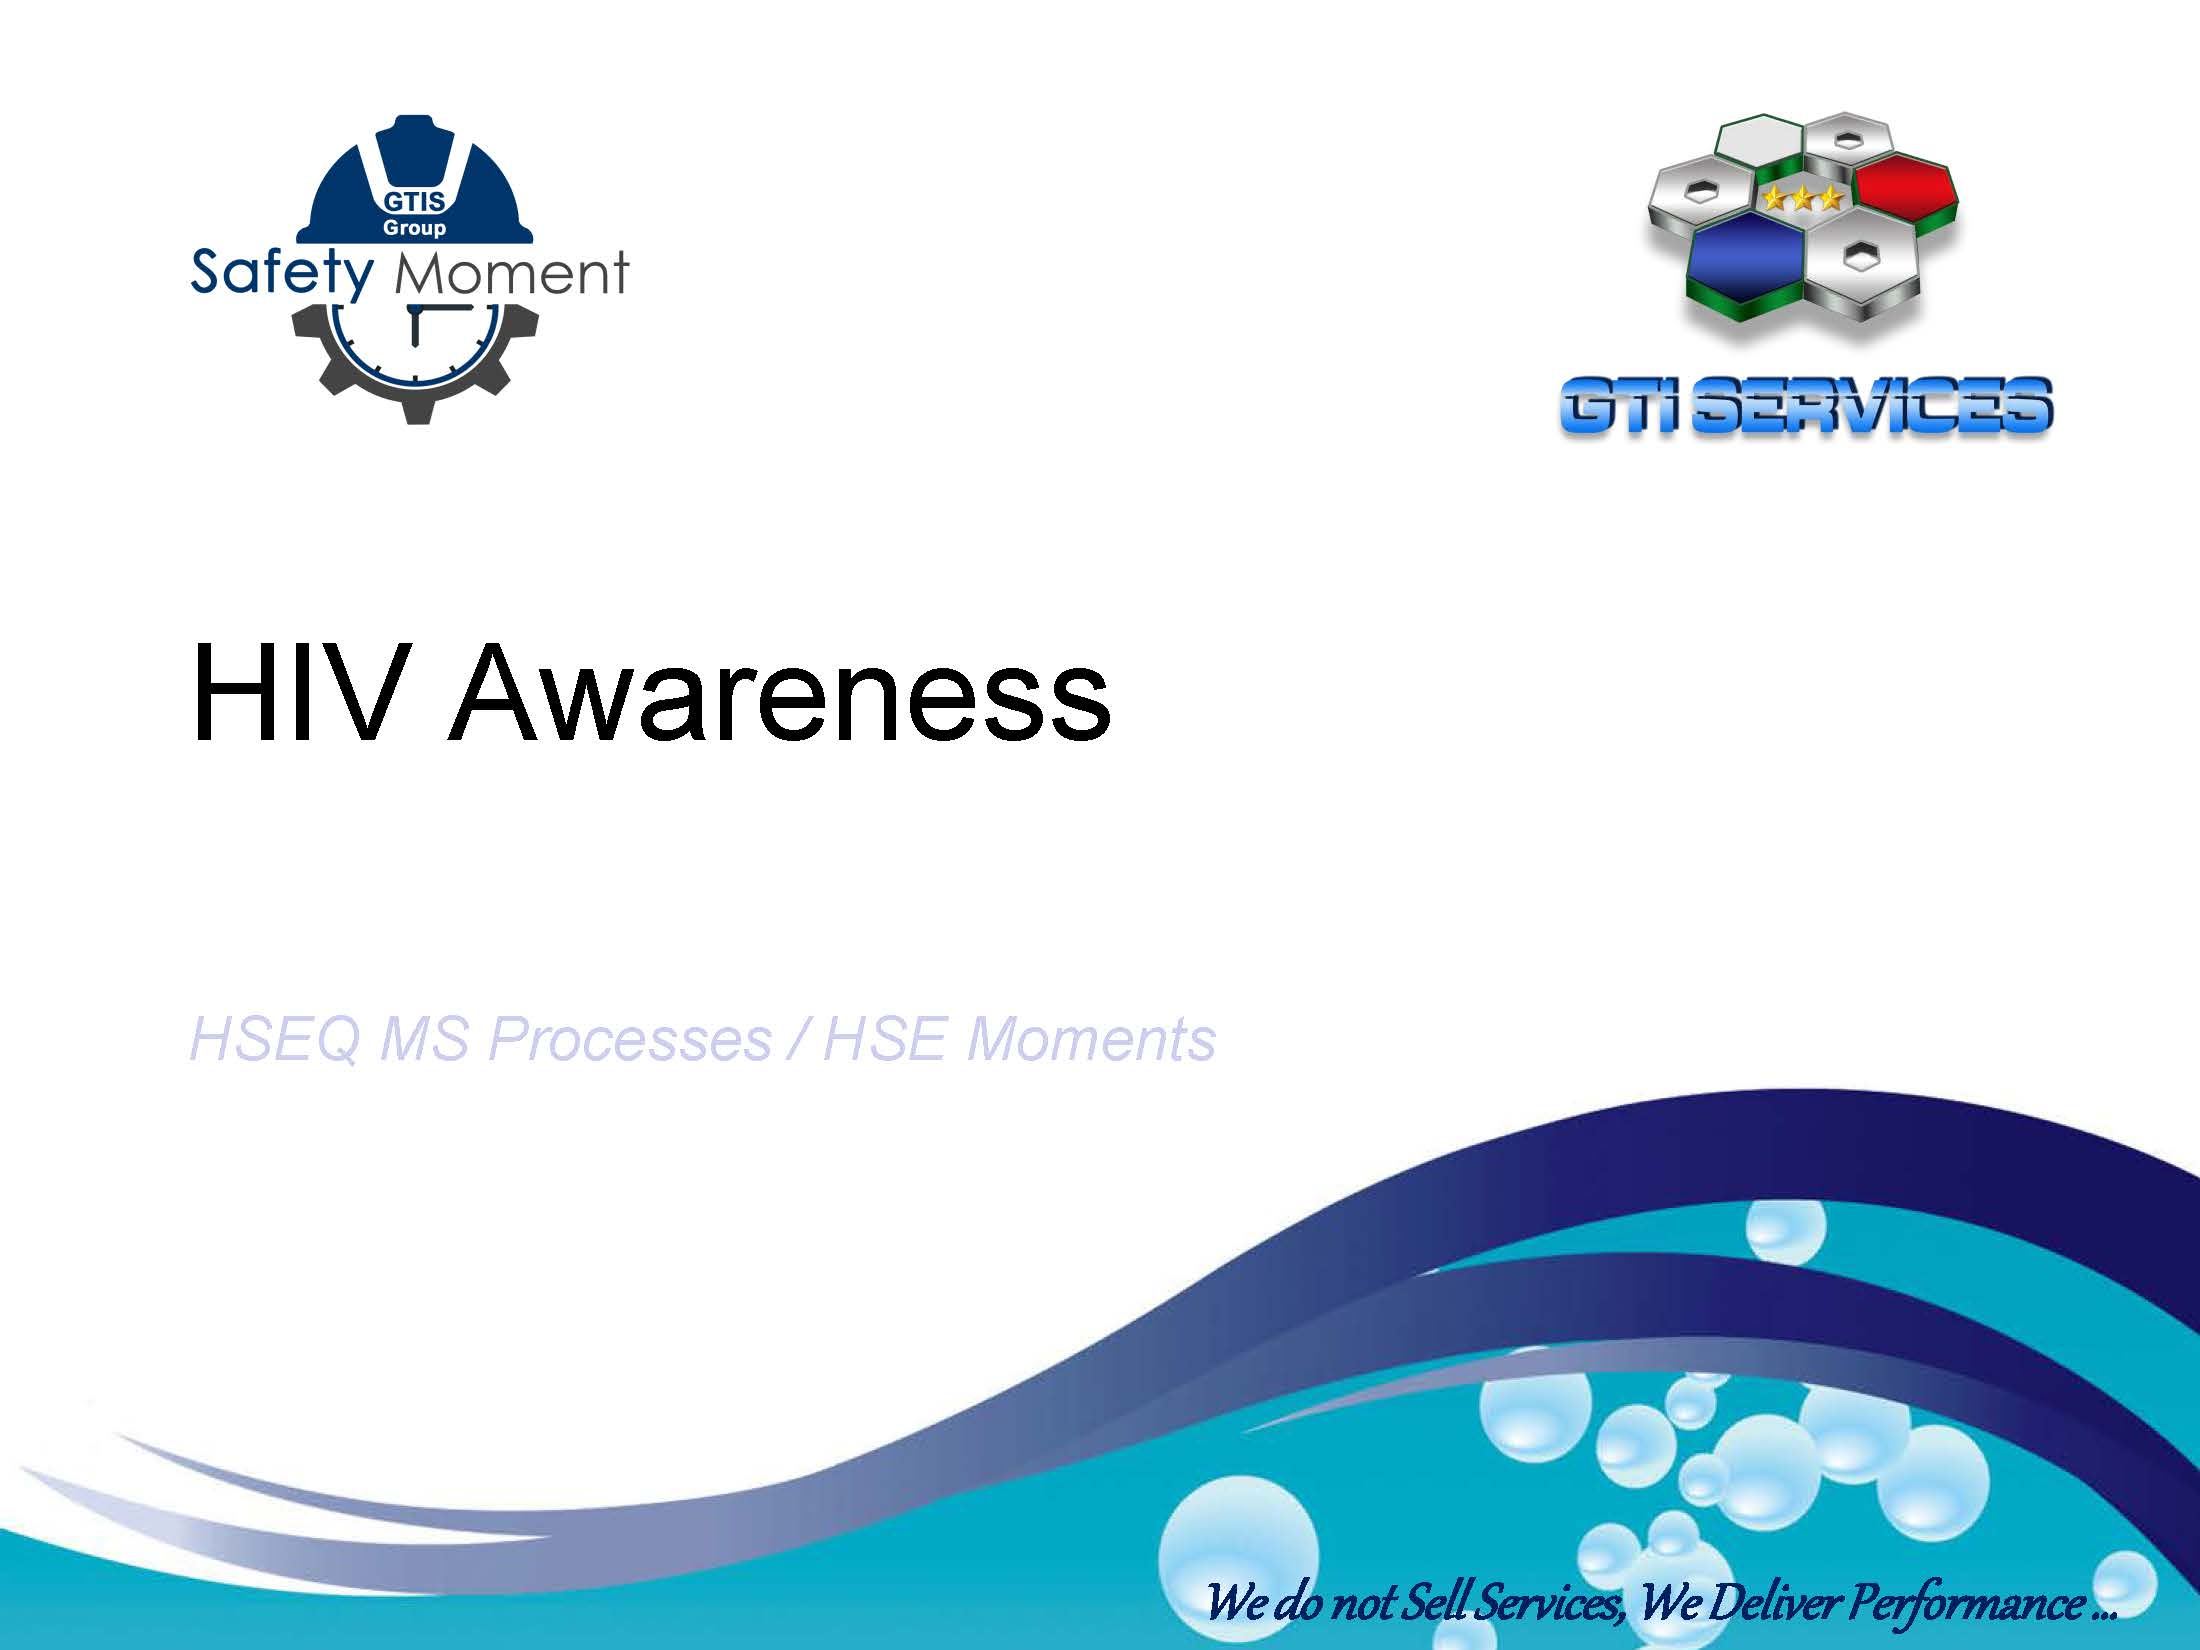 20191214 - Safety Moment - HIV Awareness_Page_01